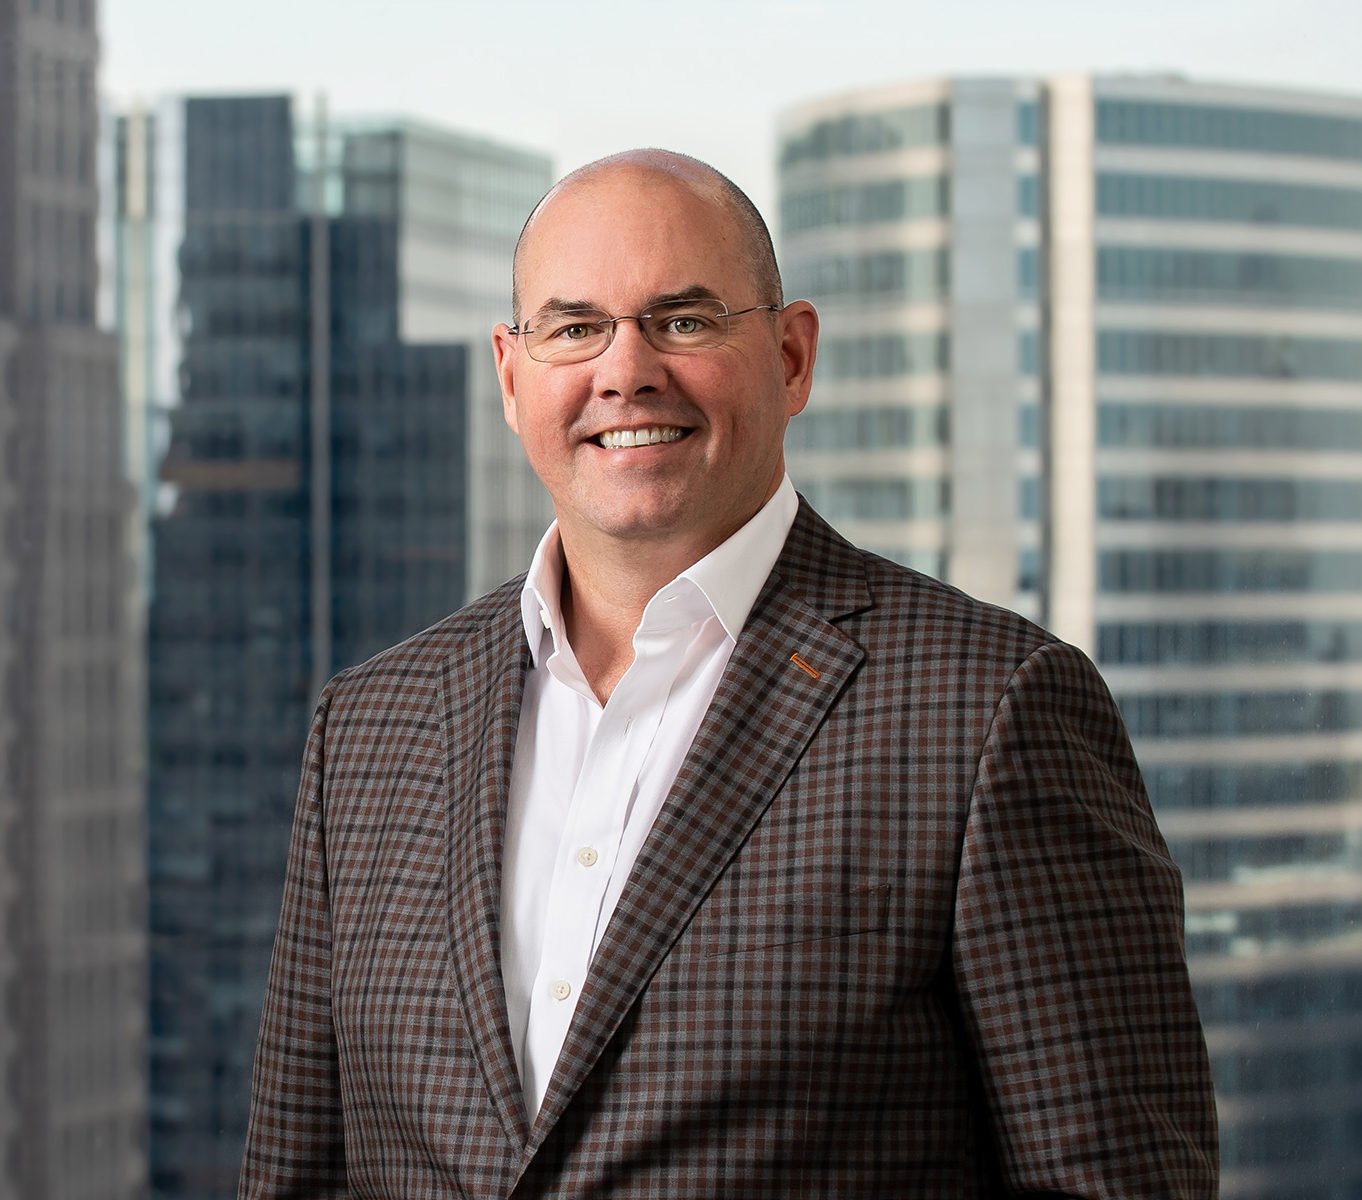 Chase Auto CEO Mark O'Donovan joins AFS for key session on